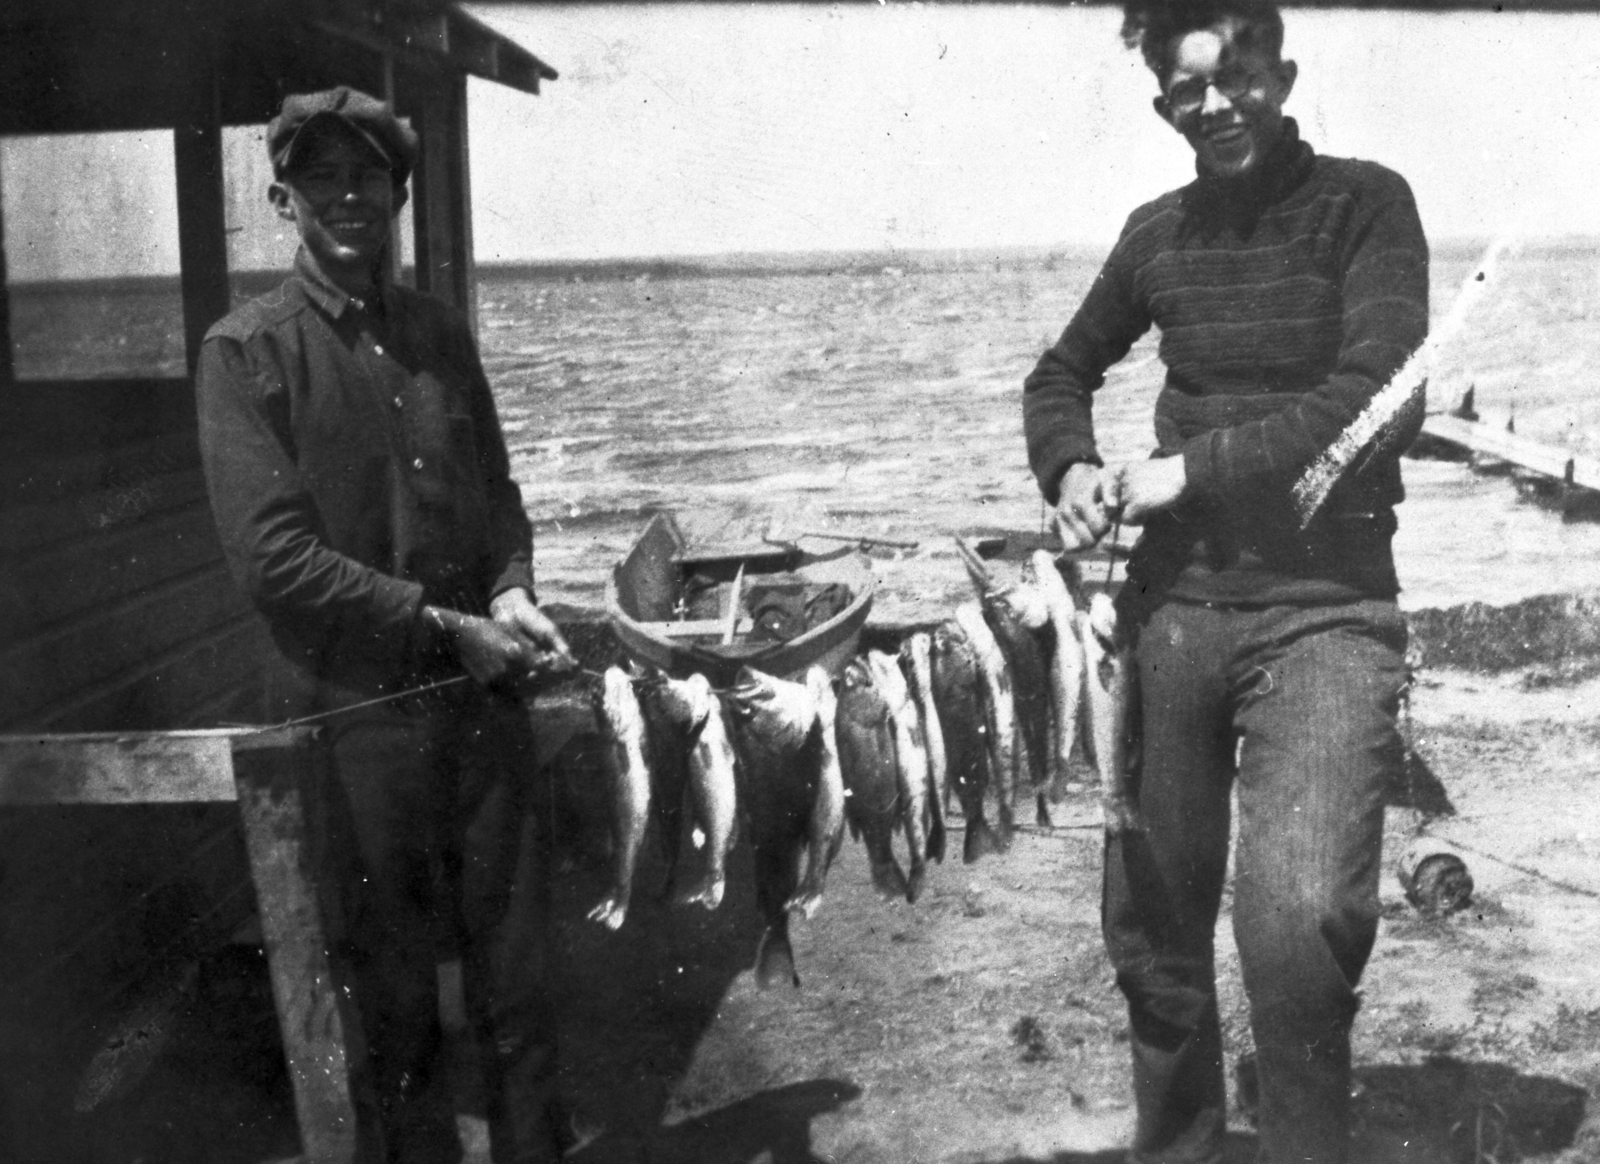 Ernest Orlando Lawrence (right) with friend and their catch of the day at Lake Andes, South Dakota, circa 1920. Digitized from damaged negative. Morgue 1958-8 (P-91) [Photographer: Donald Cooksey]